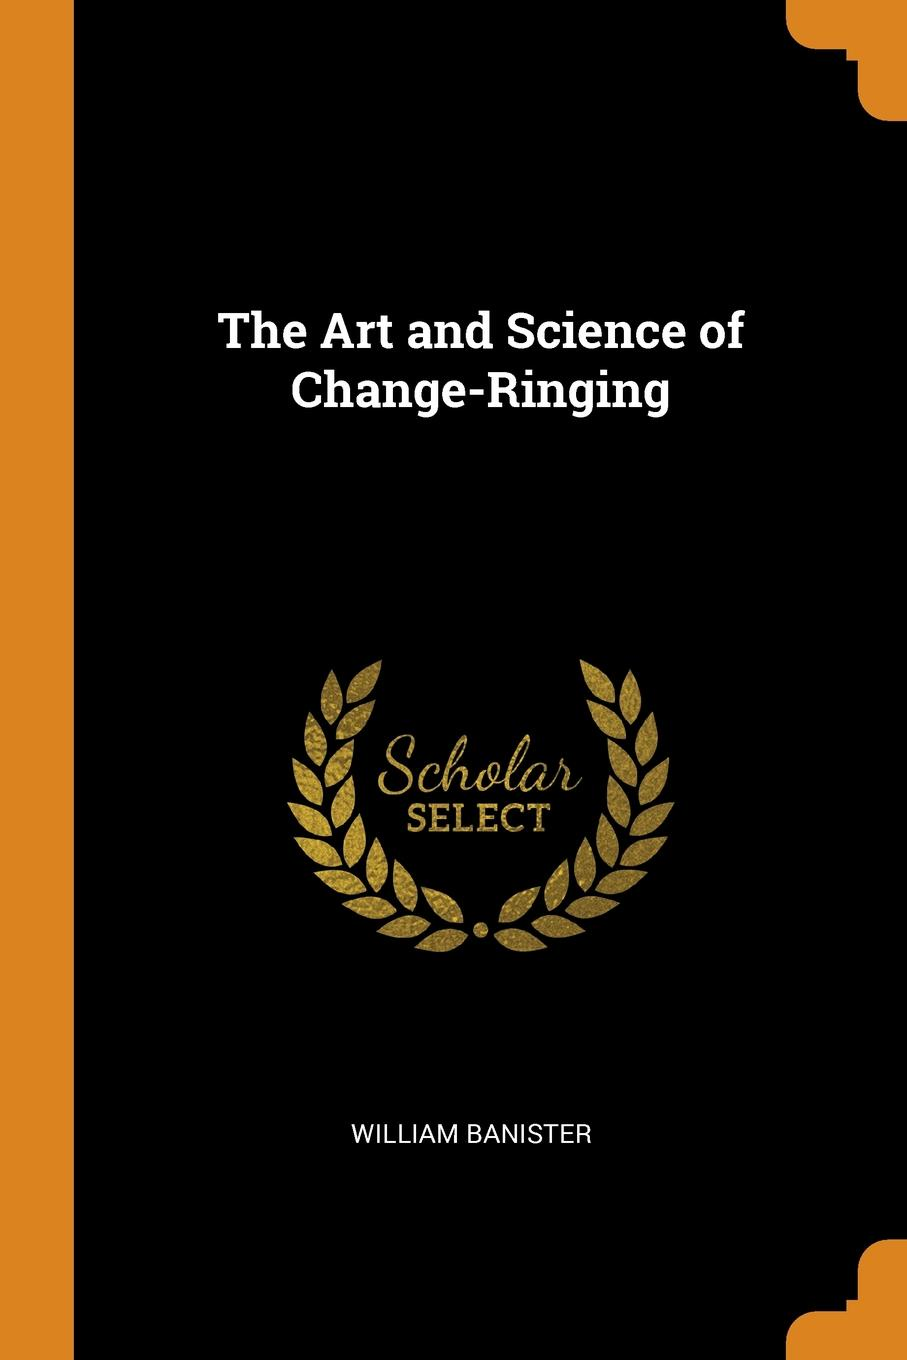 William Banister. The Art and Science of Change-Ringing